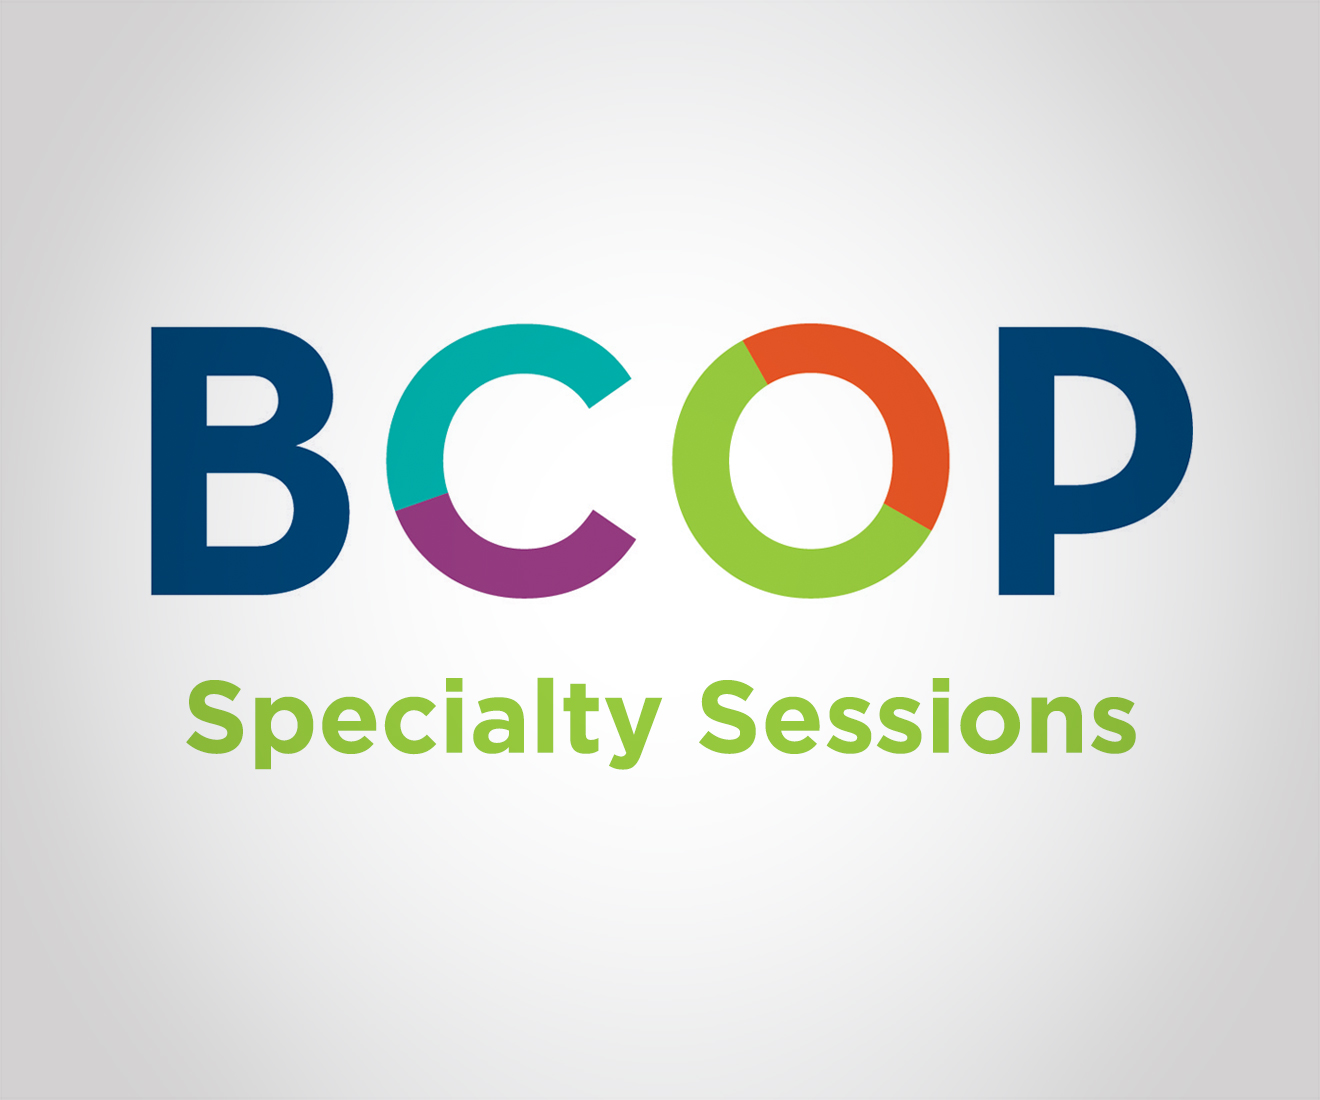 BCOP Specialty Sessions logo